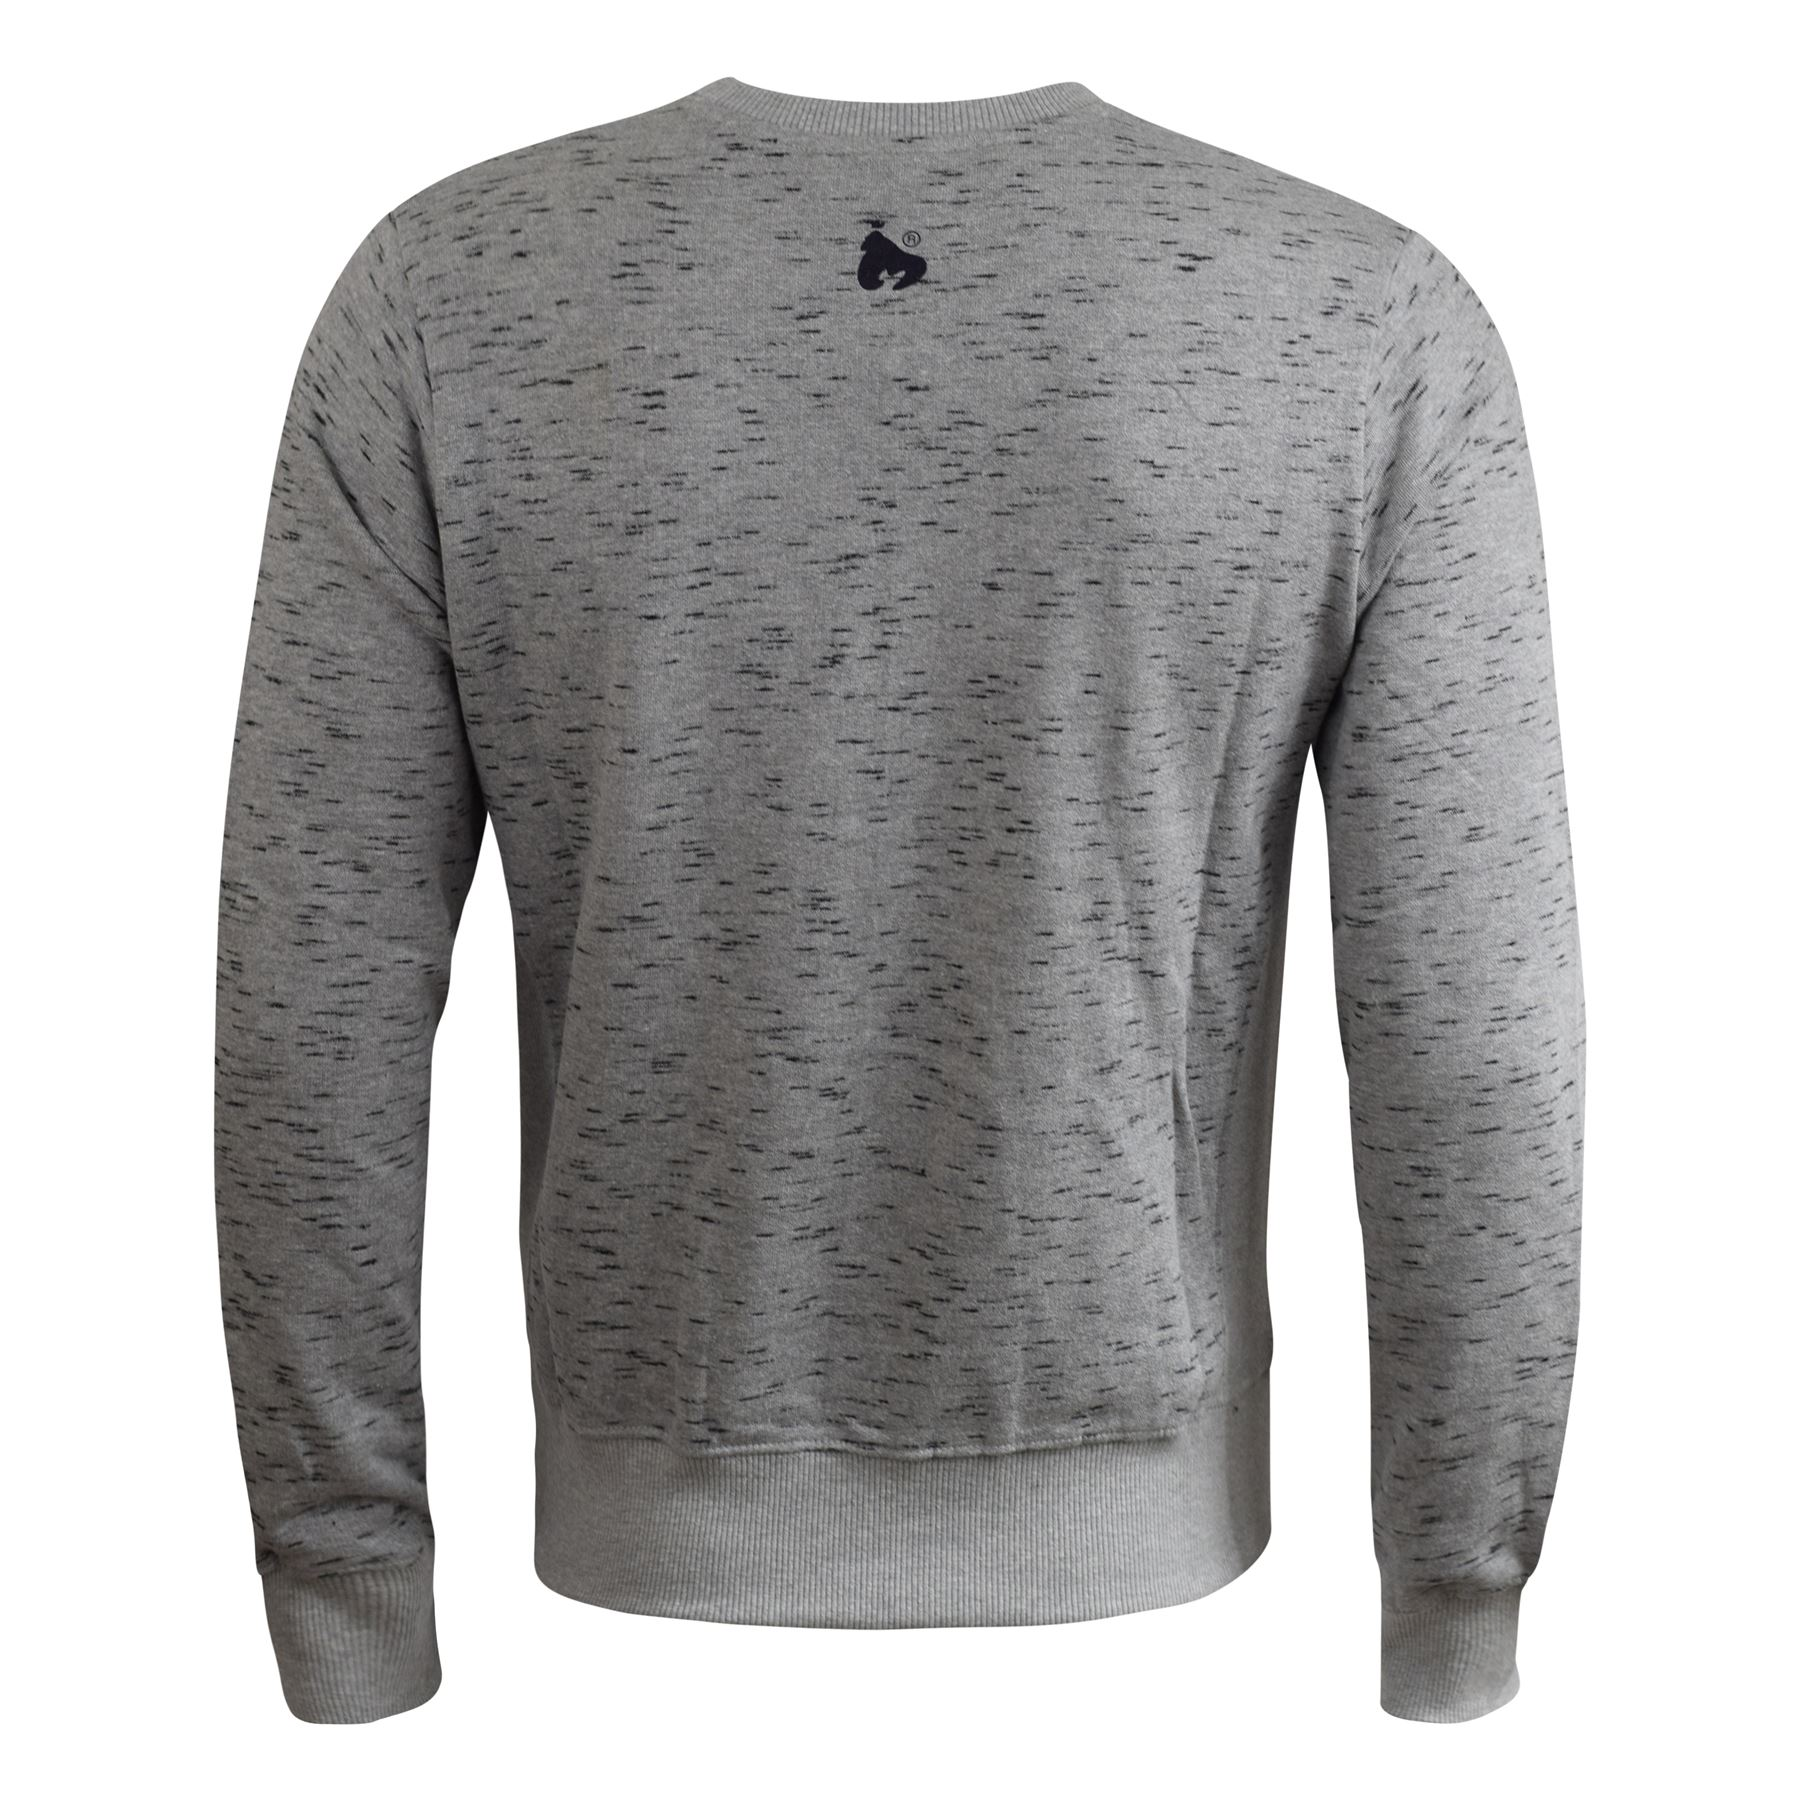 Mens-Jumper-Money-Clothing-Hardway-Crew-Neck-Sweatshirt thumbnail 5